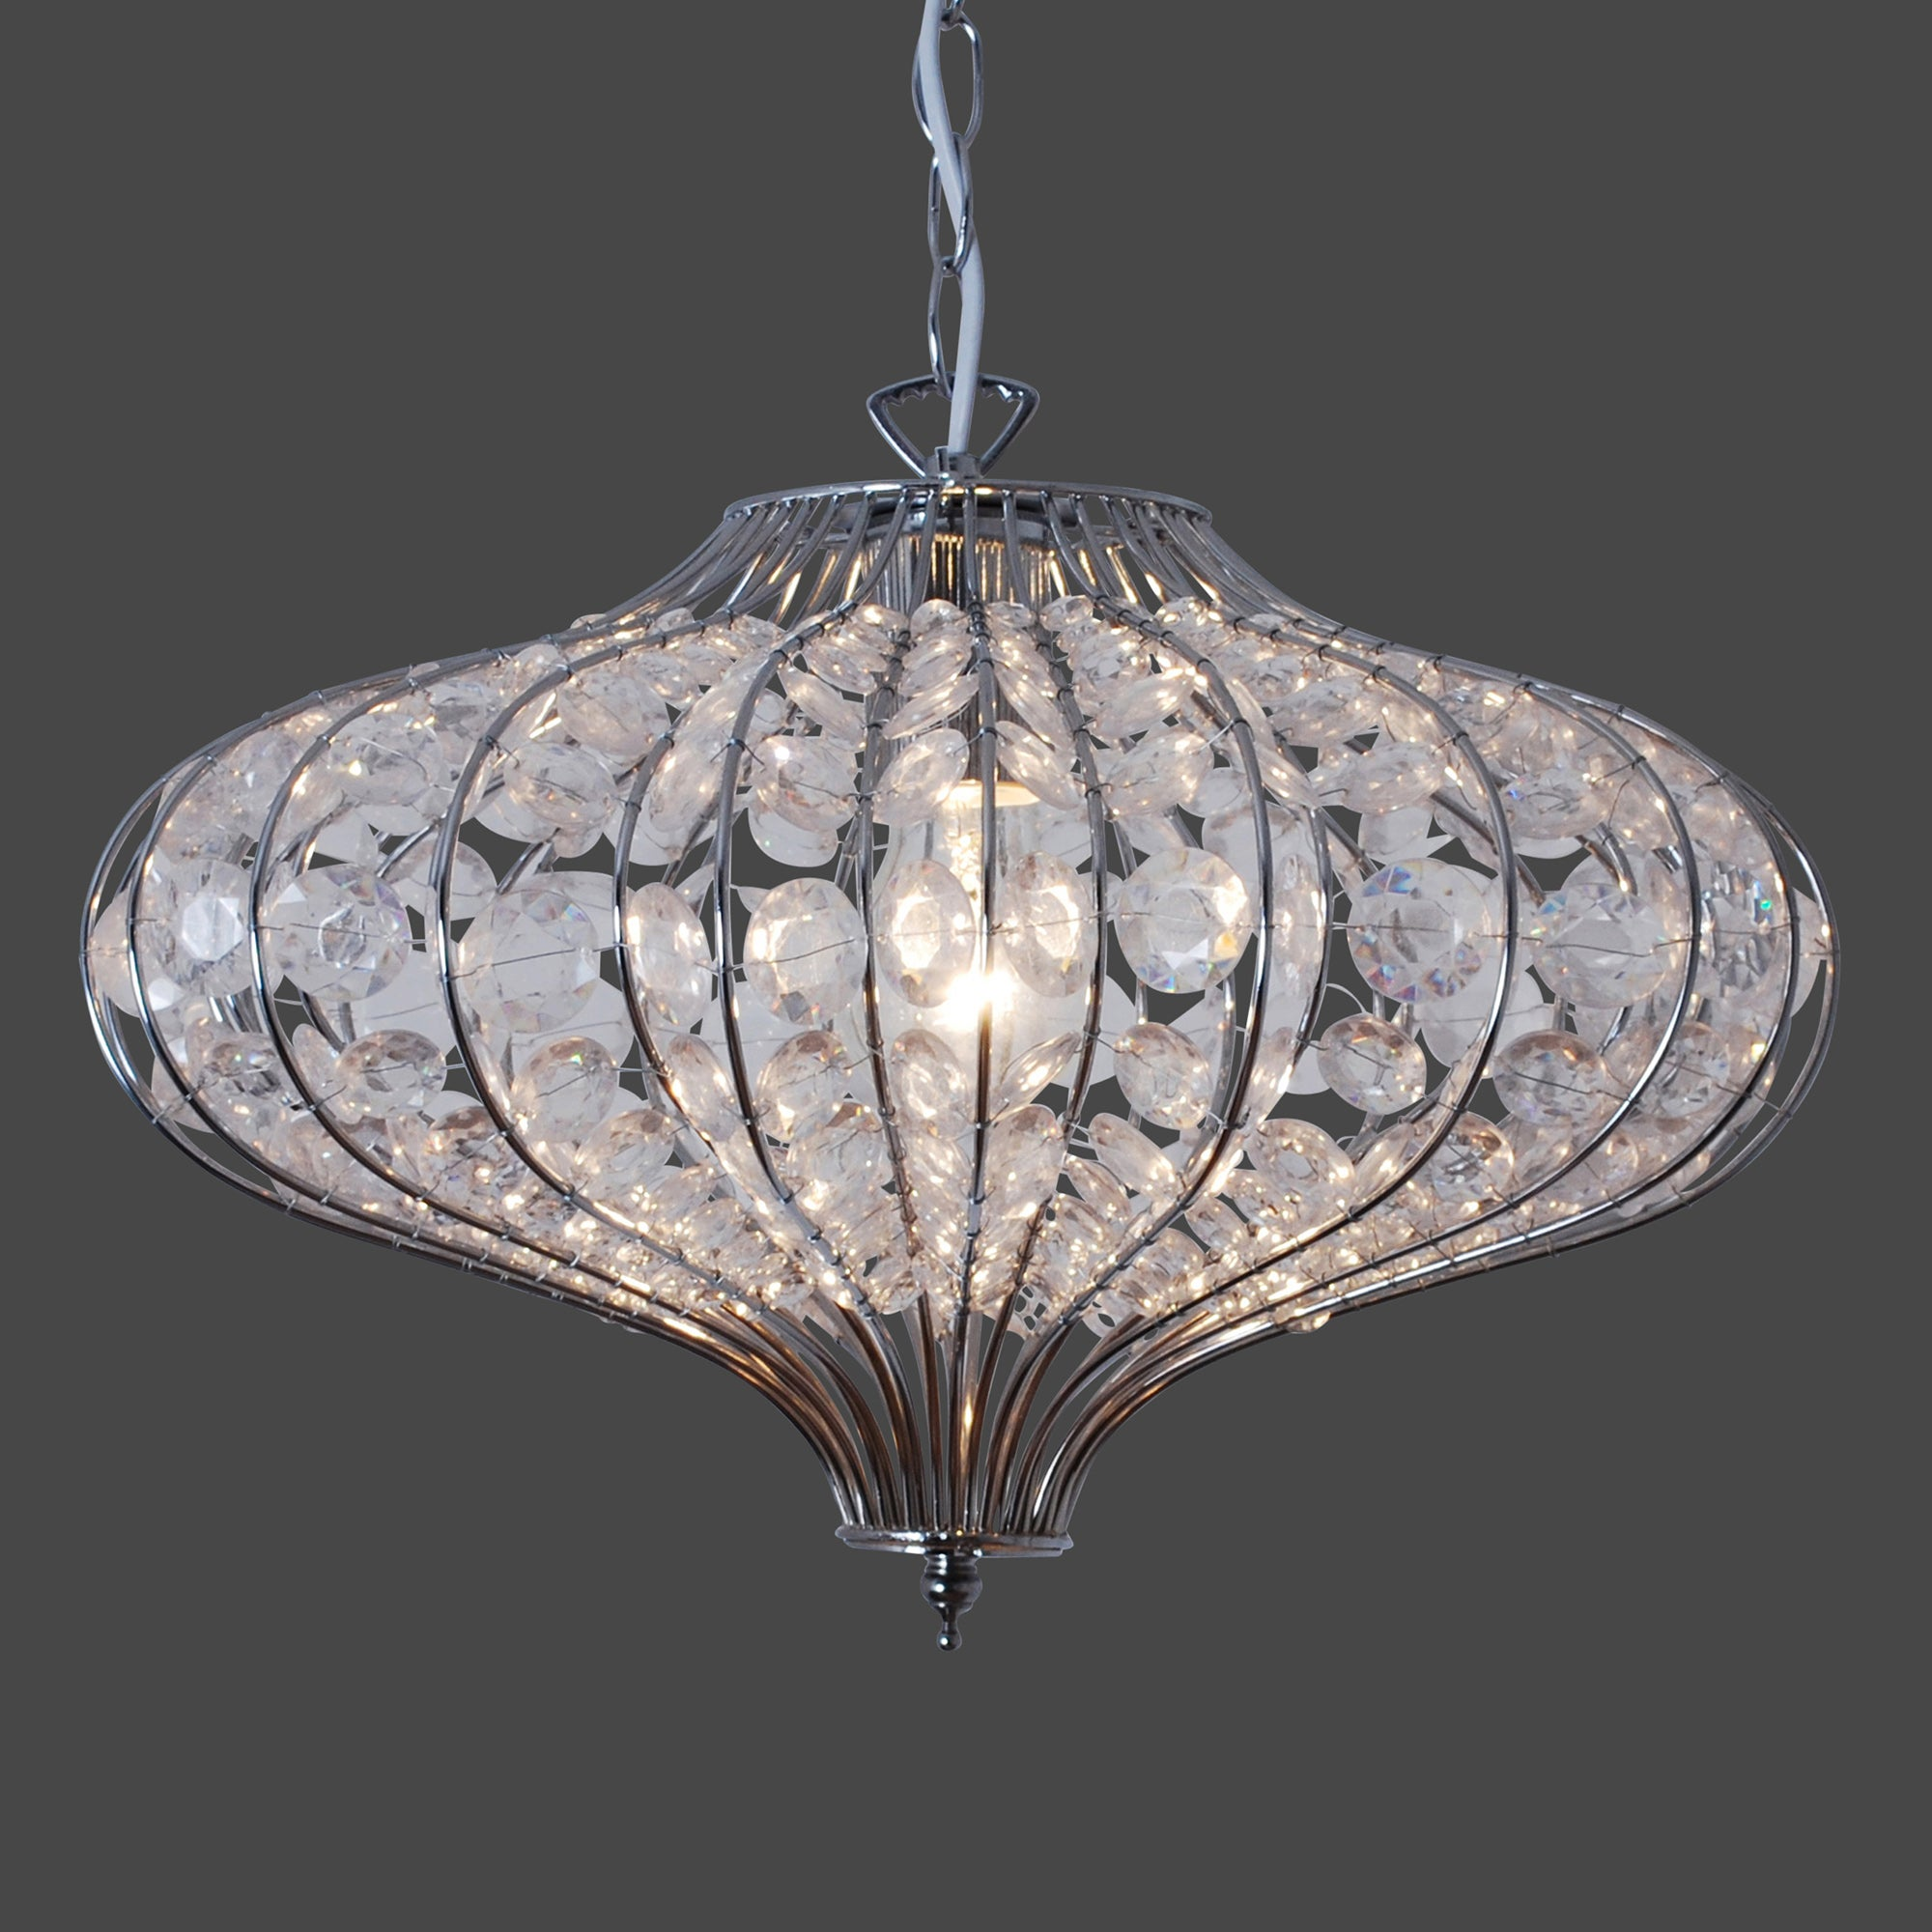 Compare prices lighting products dunelm 6000 to 7499 on image for ebony 1 light ceiling fitting clear at dunelm mozeypictures Gallery